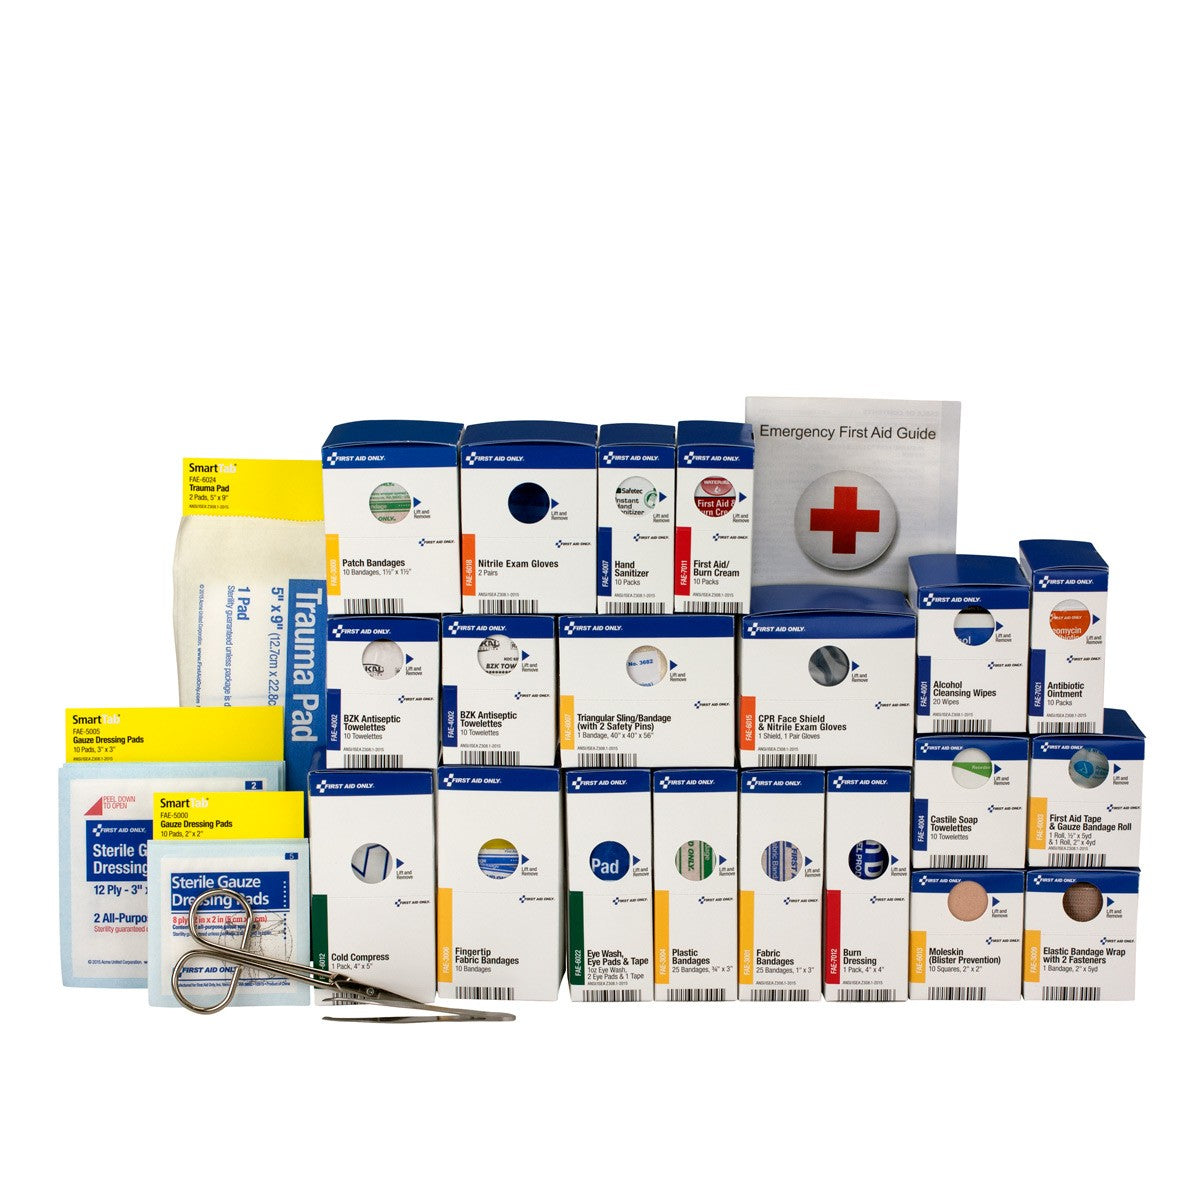 Large SmartCompliance First Aid Food Service First Aid Refill Pack, ANSI A+ Compliant With Medication